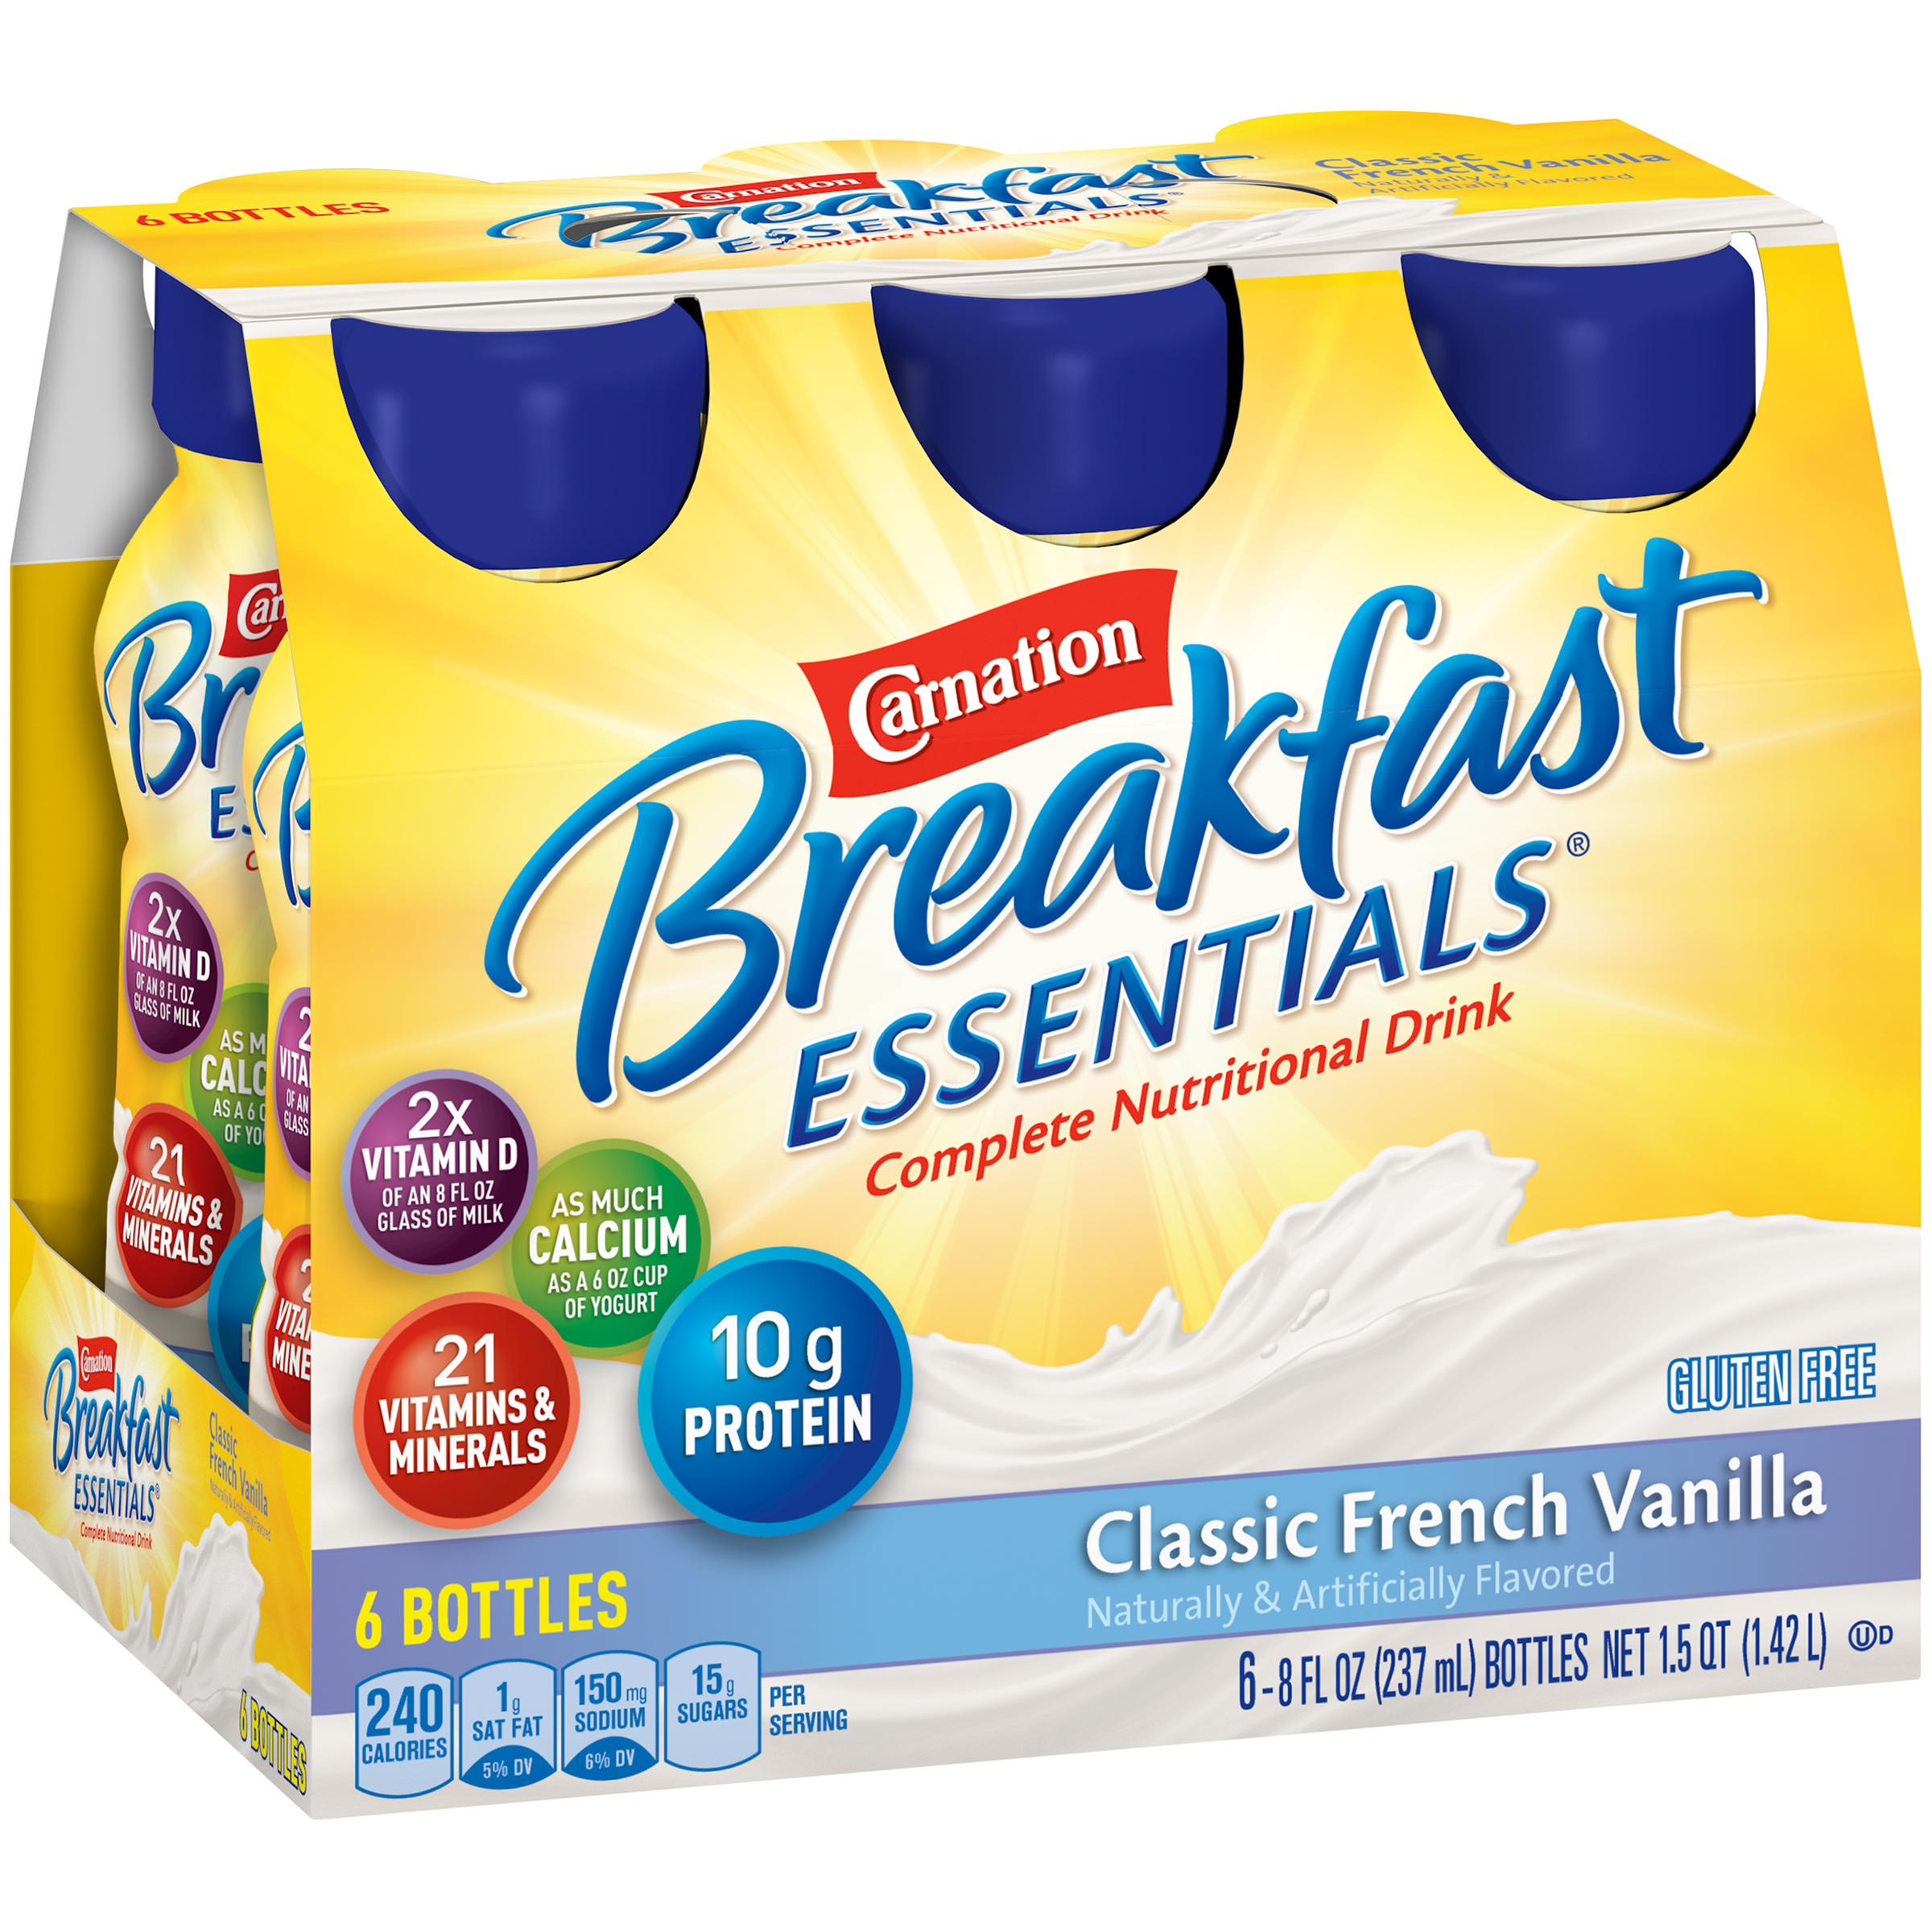 Carnation Breakfast Essentials�� Classic French Vanilla Complete Nutritional Drinks, 8 fl oz, 6 count